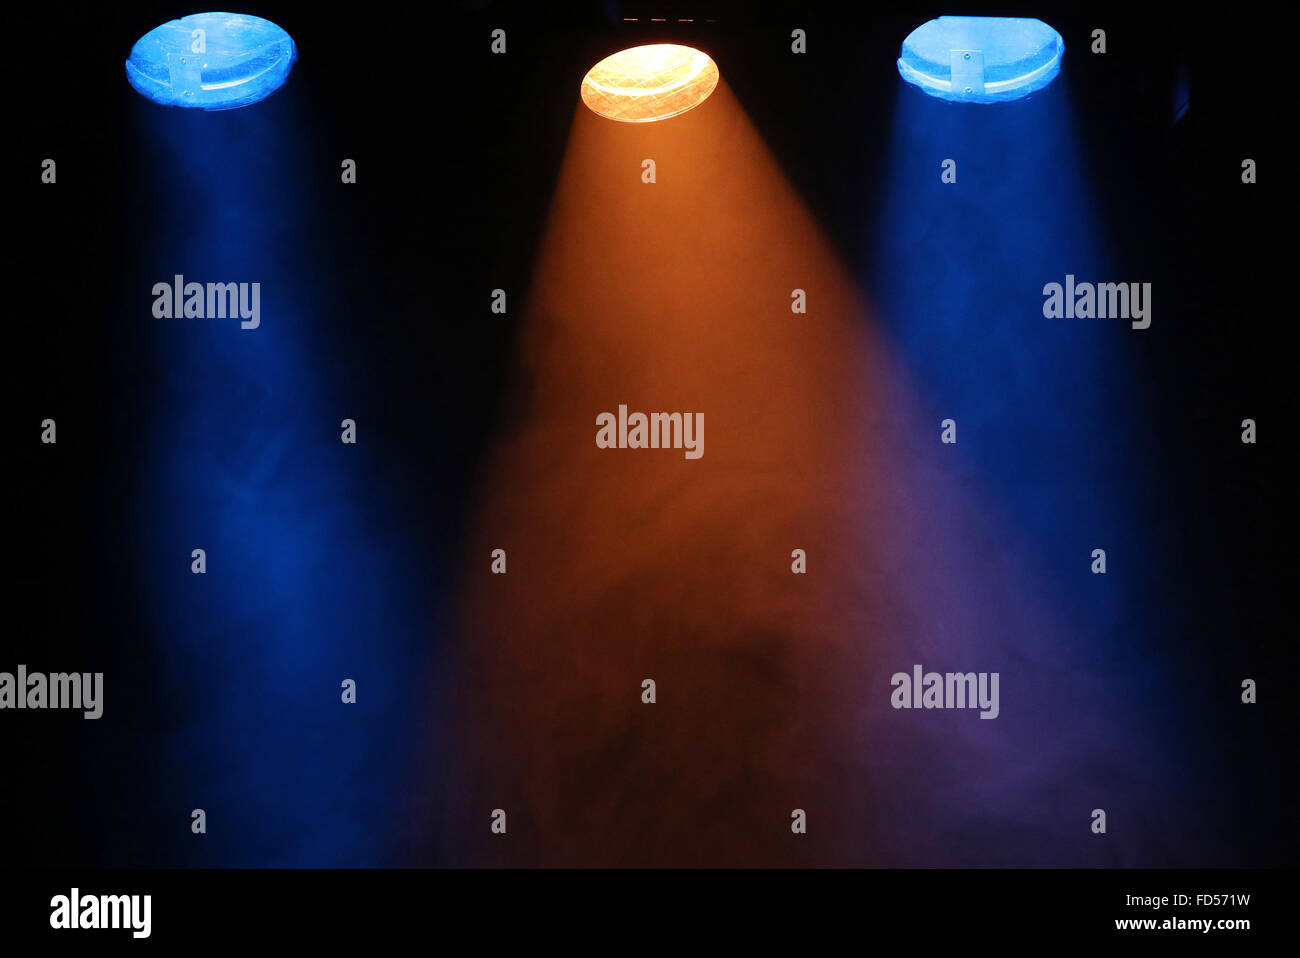 Stage lights. - Stock Image